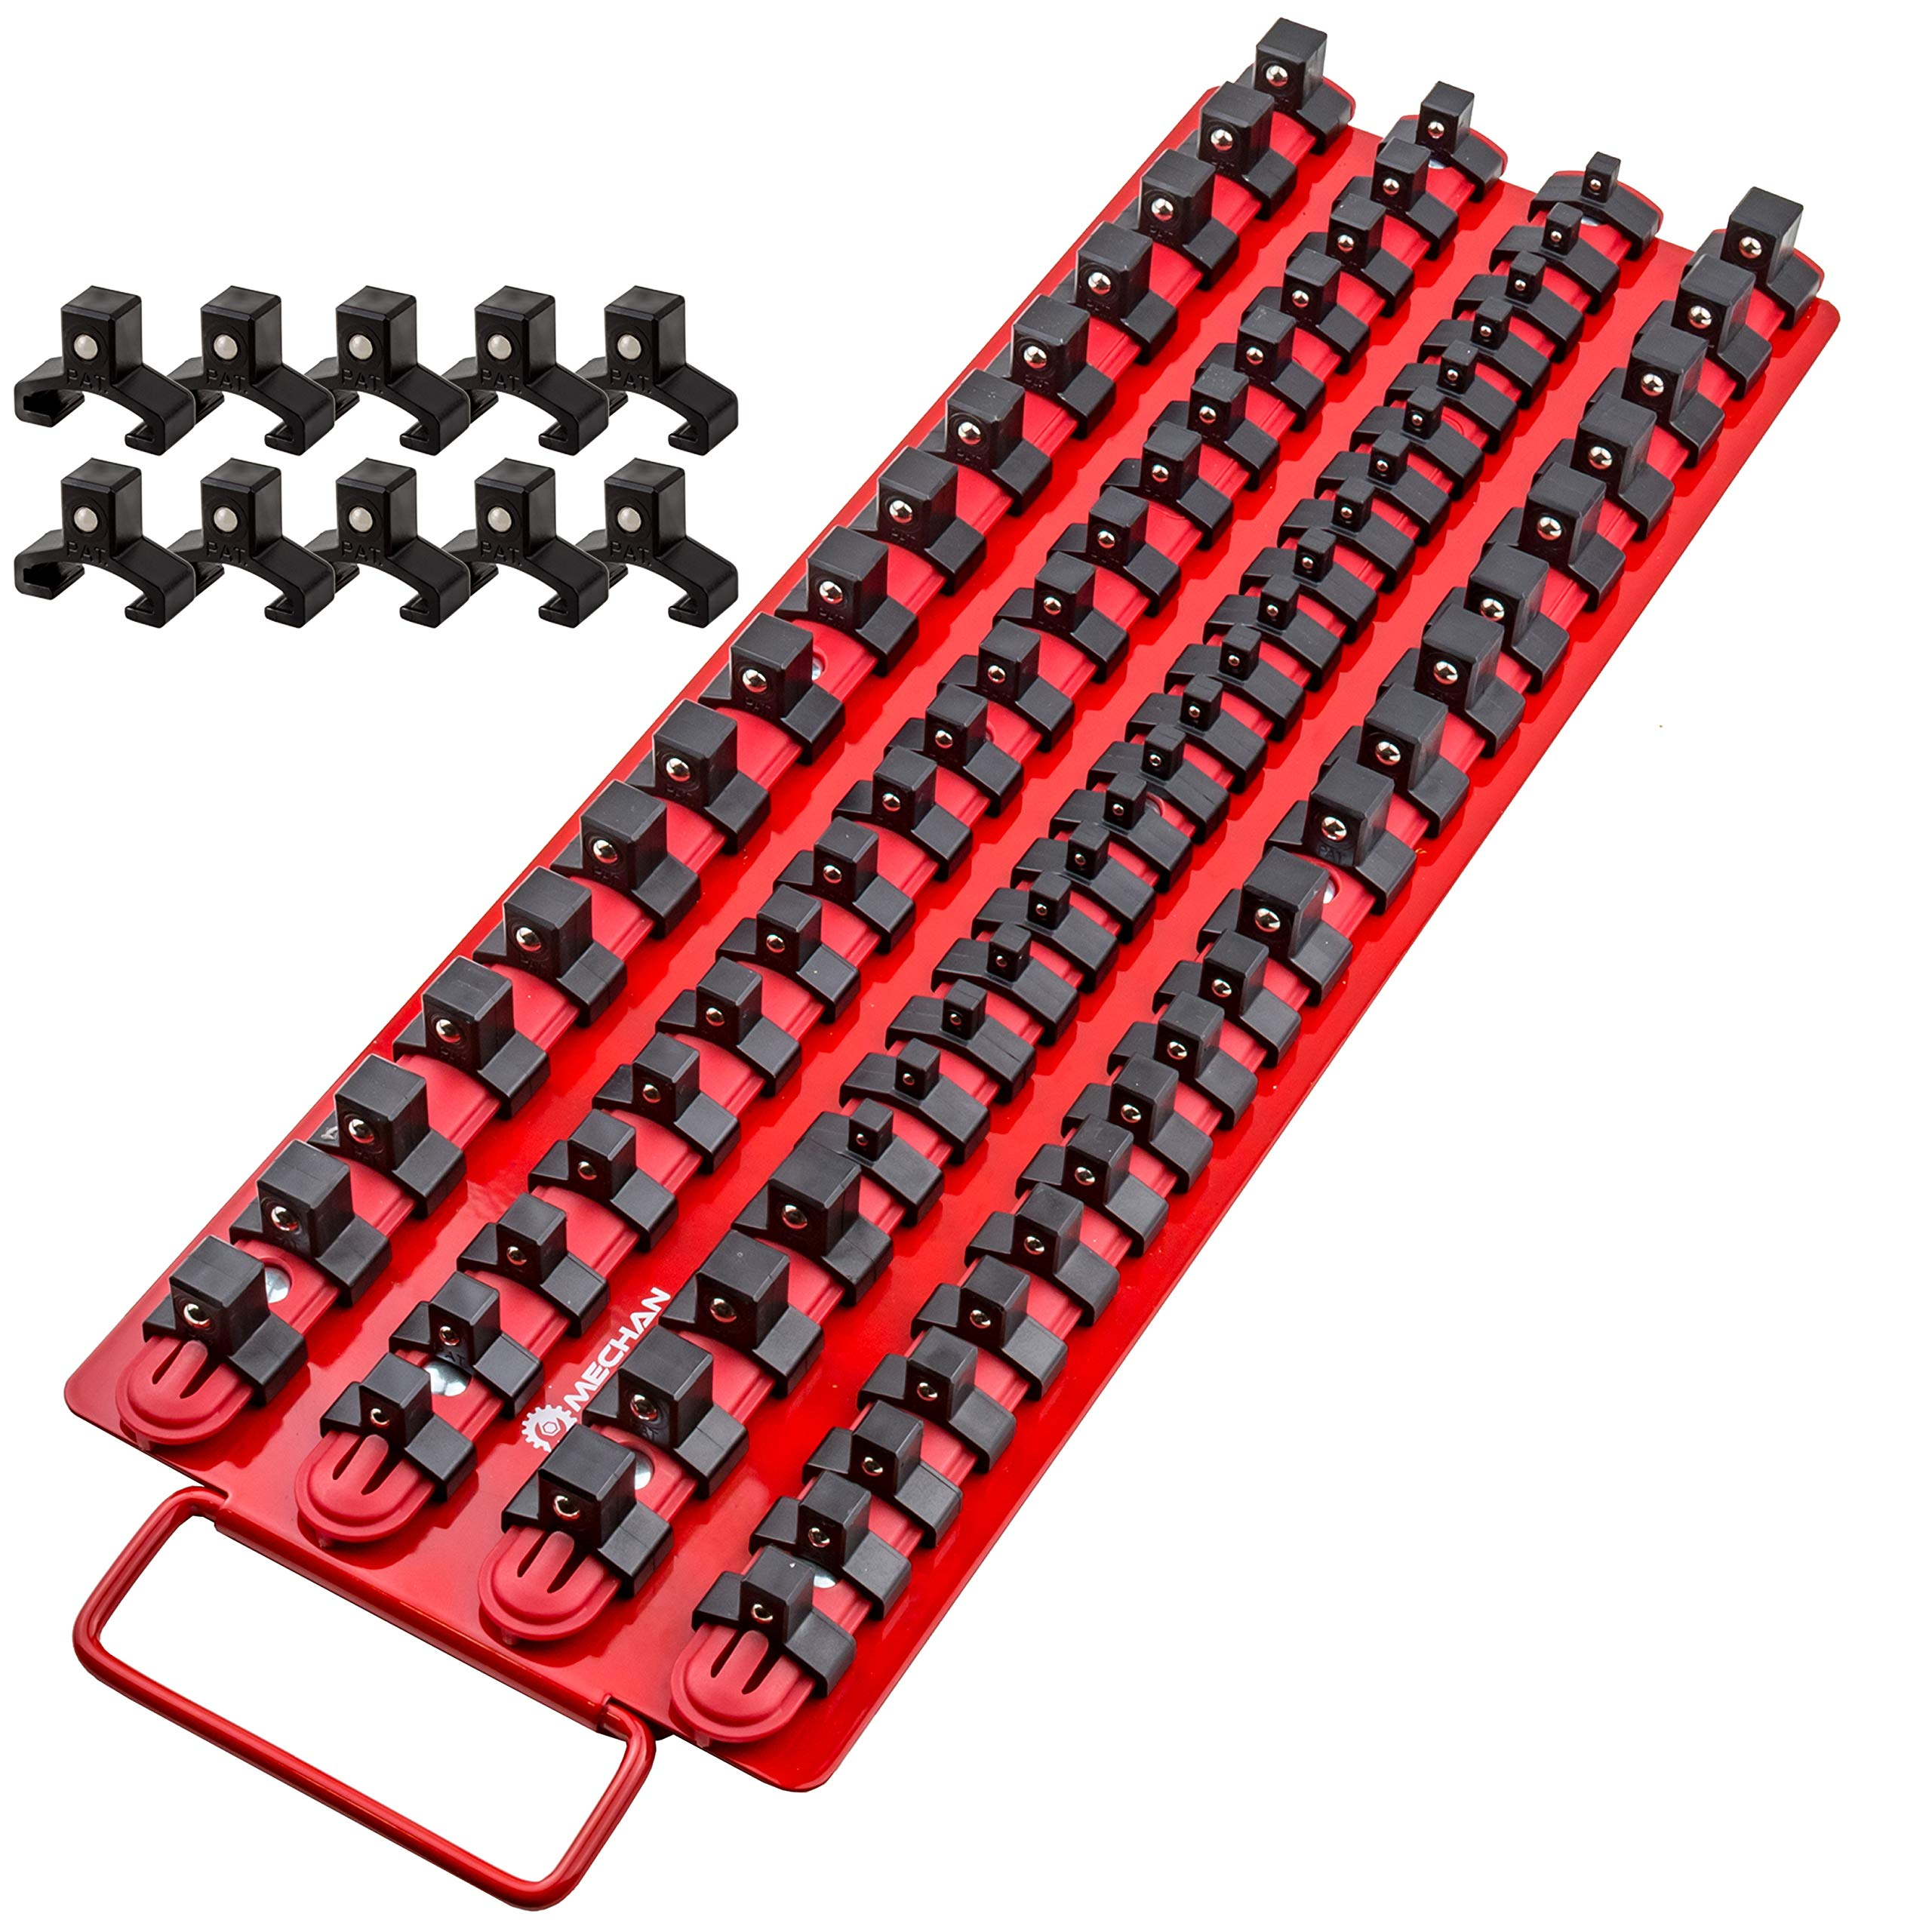 1//2 Drive Sockets Storage With Carrying Handle 3//8 1//2 Drive Sockets Storage With Carrying Handle 3//8 Nisorpa 80pcs Snap On Socket Organizer Tray Metal Sockets Holders Steel Rail Rack Tool Organizer For 1//4